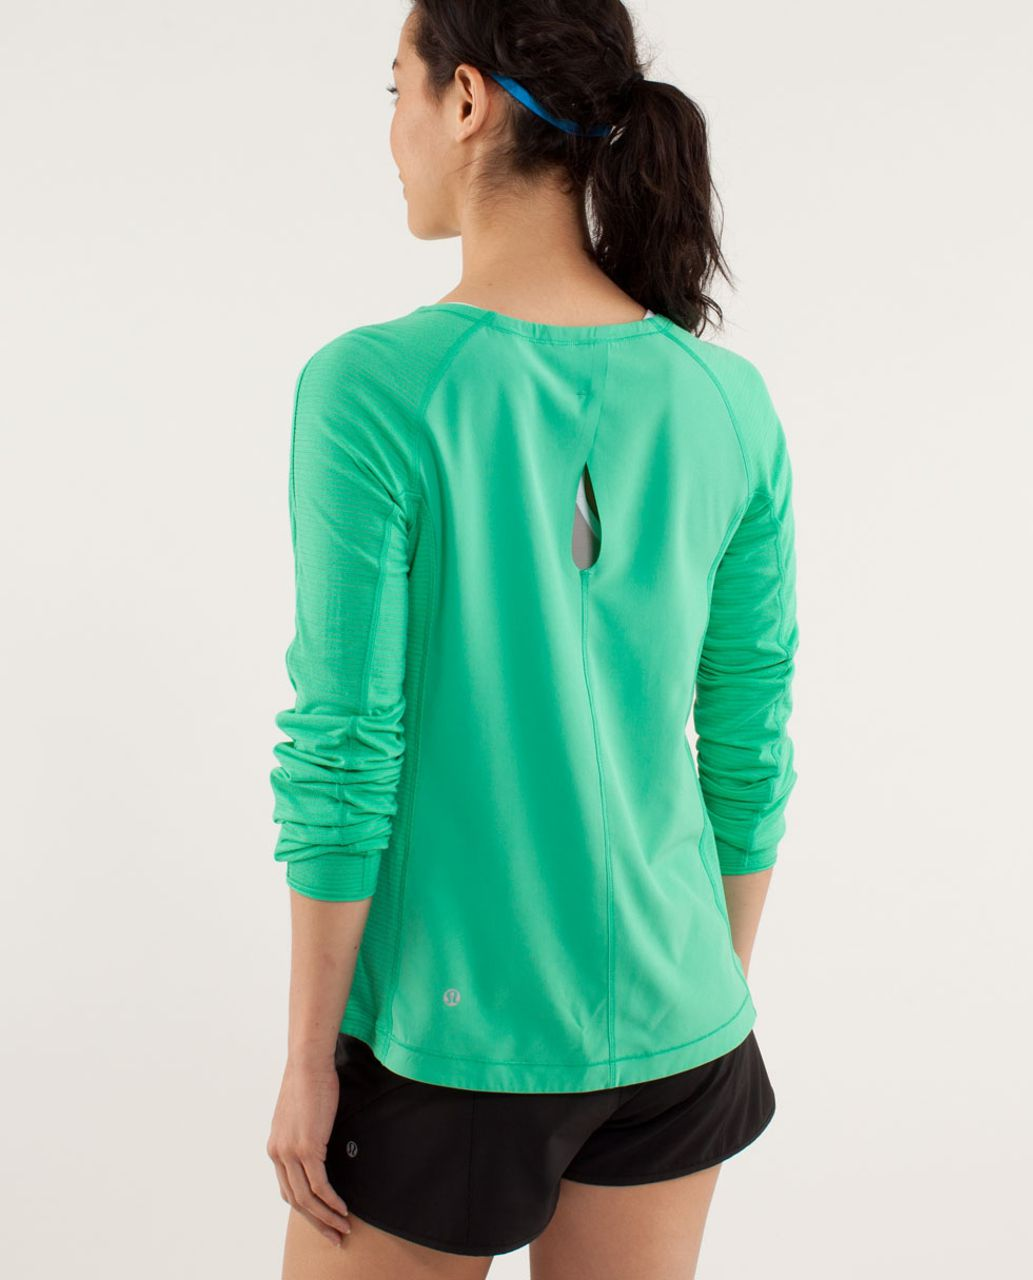 Lululemon Run:  Silver Lining Long Sleeve - Very Green / Fresh Teal